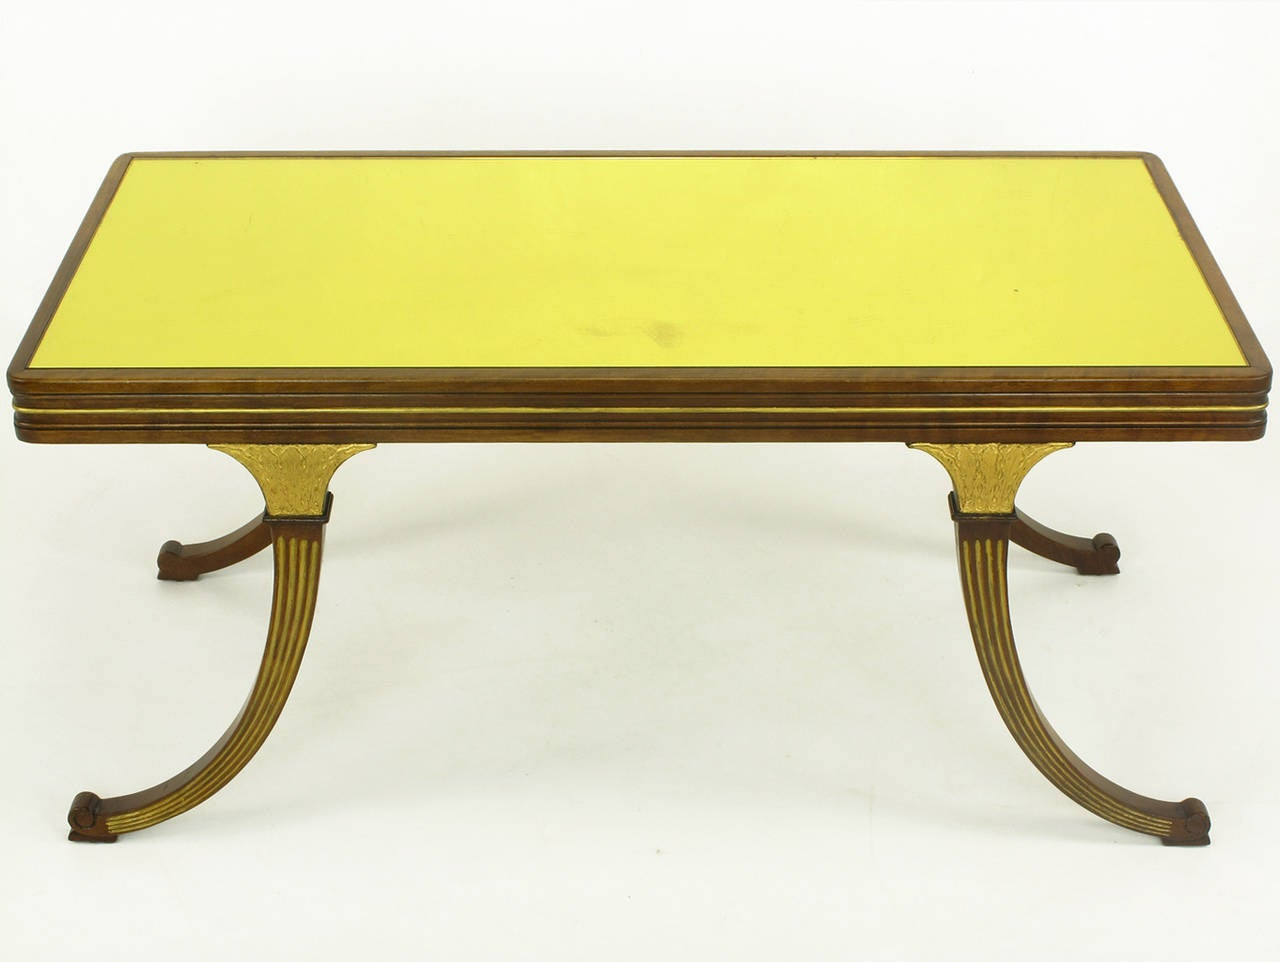 Empire Coffee Table Early 1900s Parcel Gilt And Walnut Empire Coffee Table With Gold